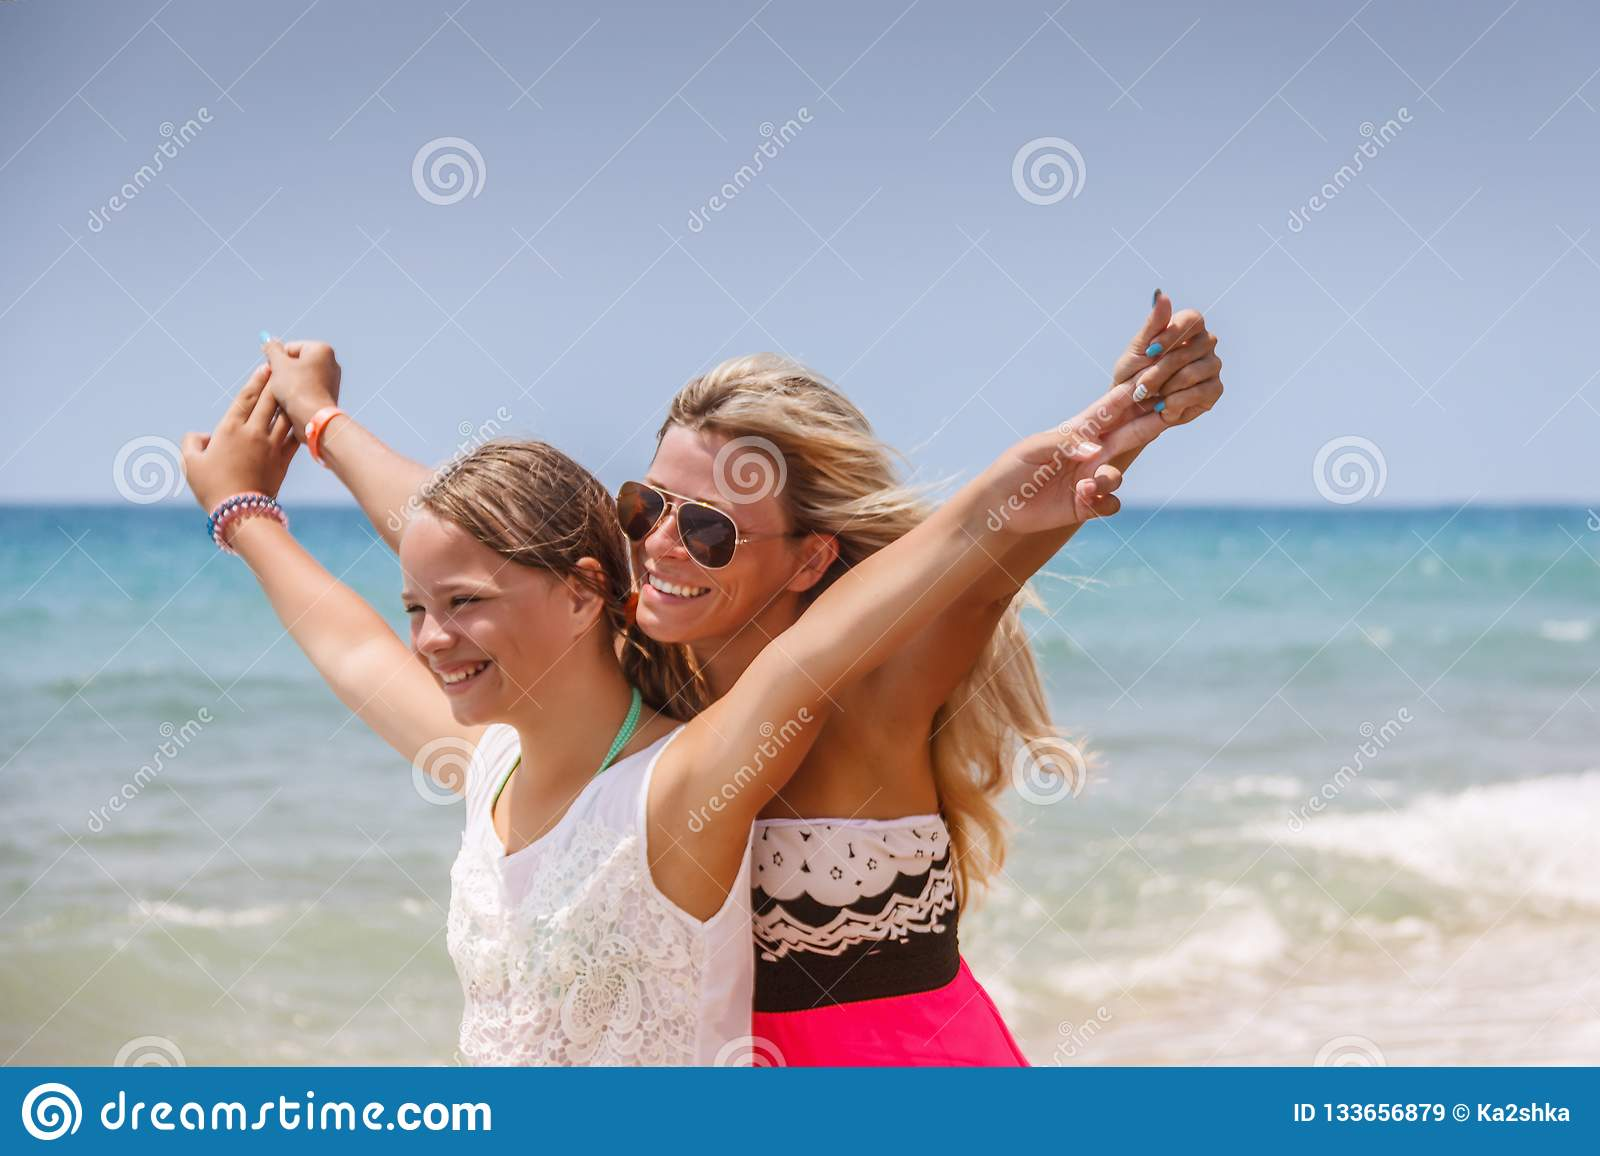 Happy family on the beach. People having fun on summer vacation. Mother and child against blue sea and sky background. Holiday